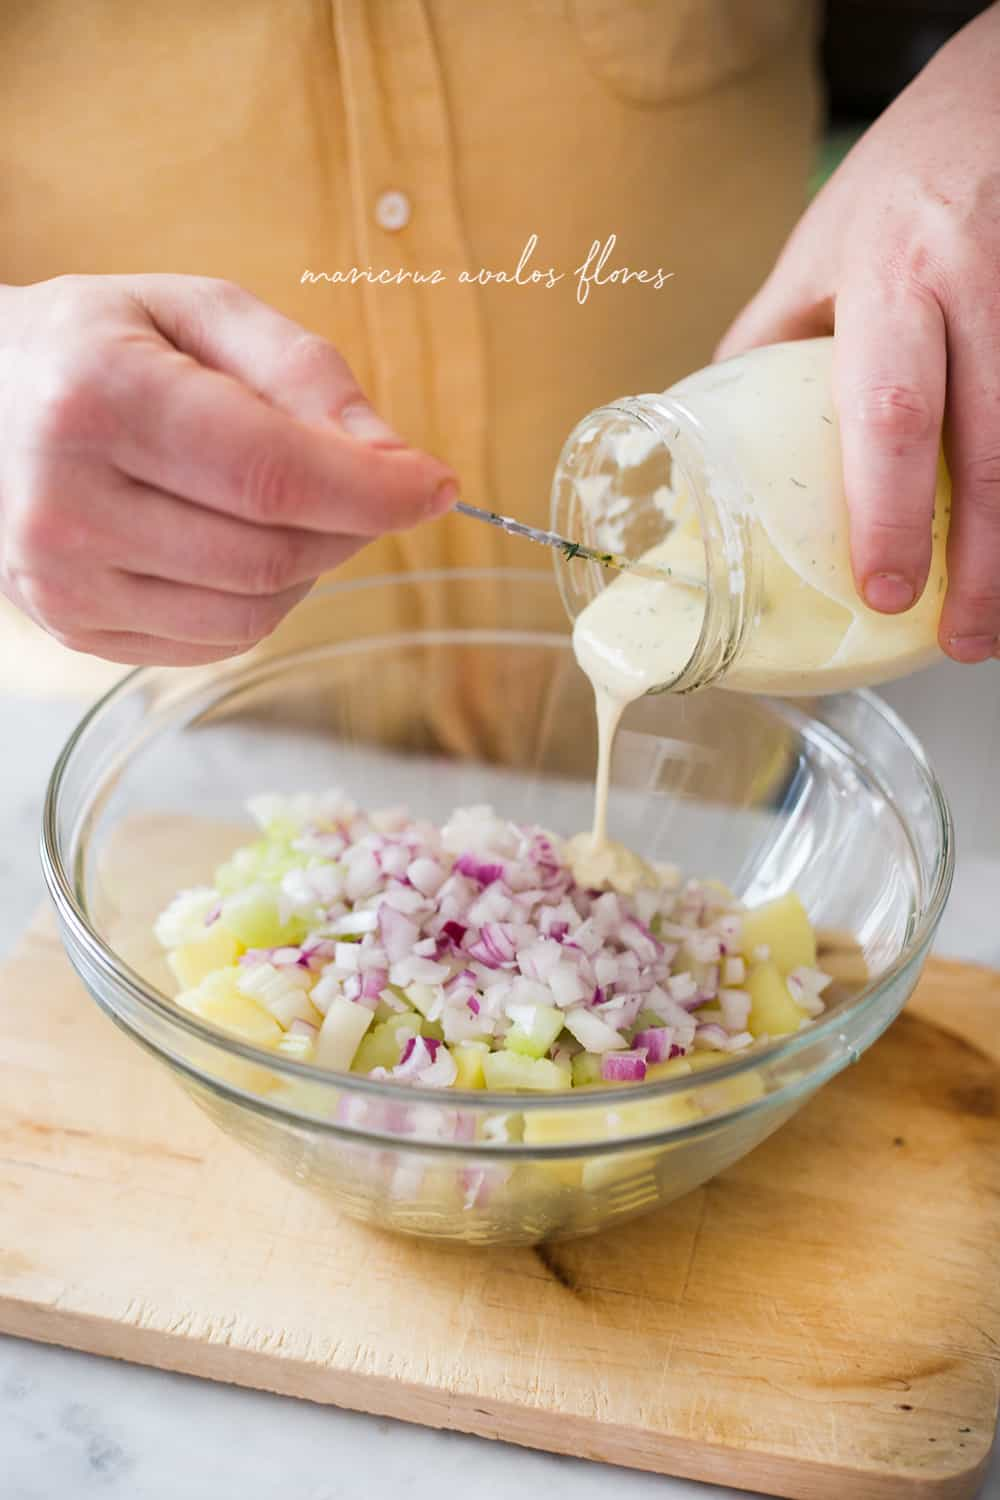 Preparing no mayo potato salad: Pouring the dressing into the bowl with all ingredients.